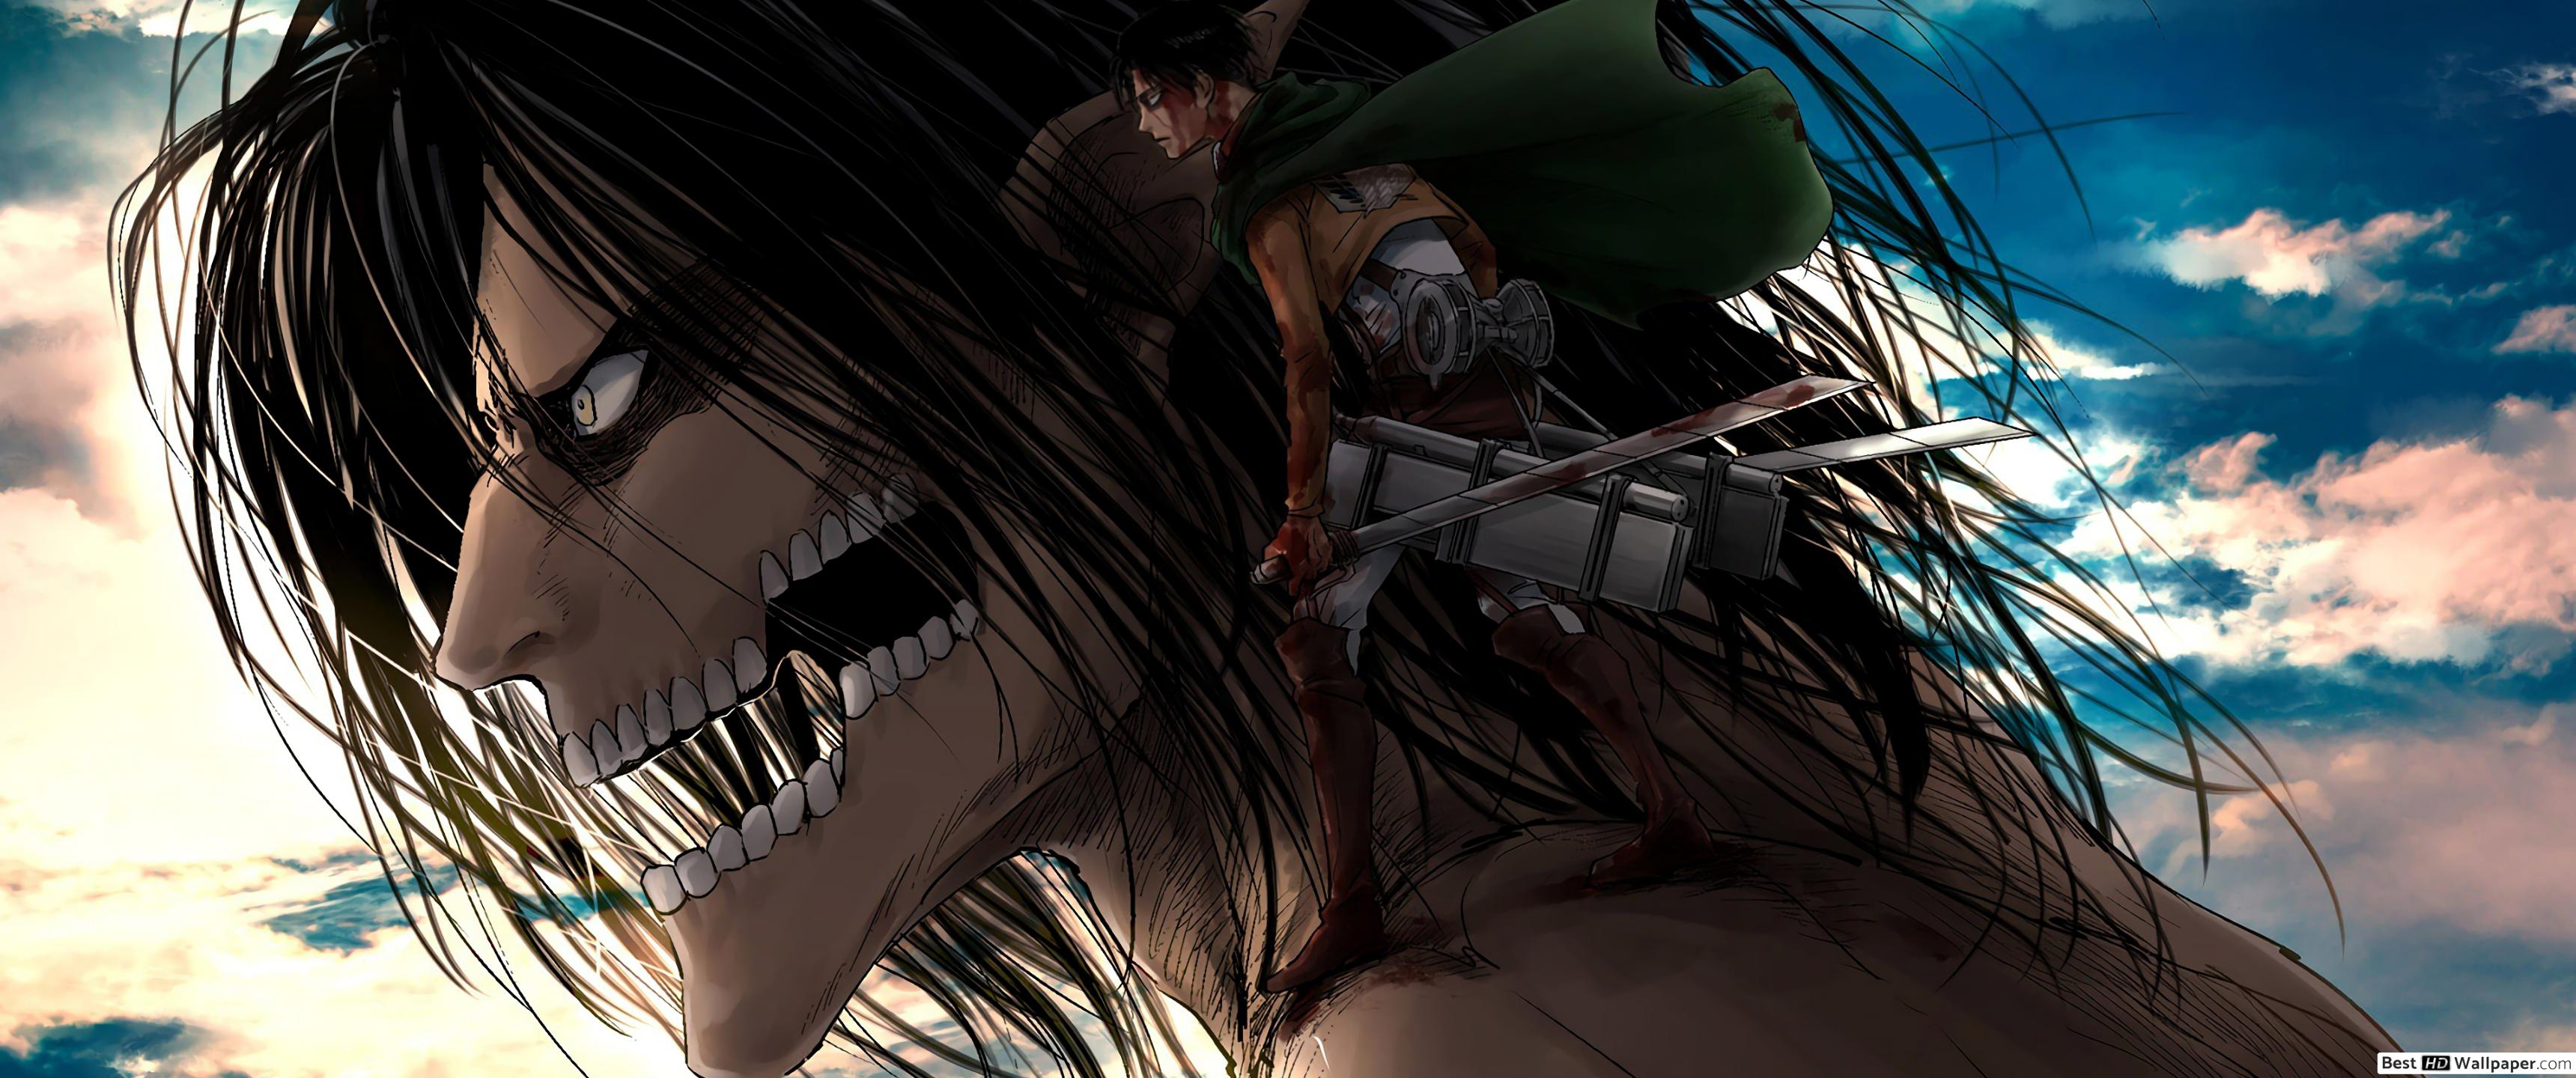 Wallpaper Attack On Titan Posted By Christopher Anderson